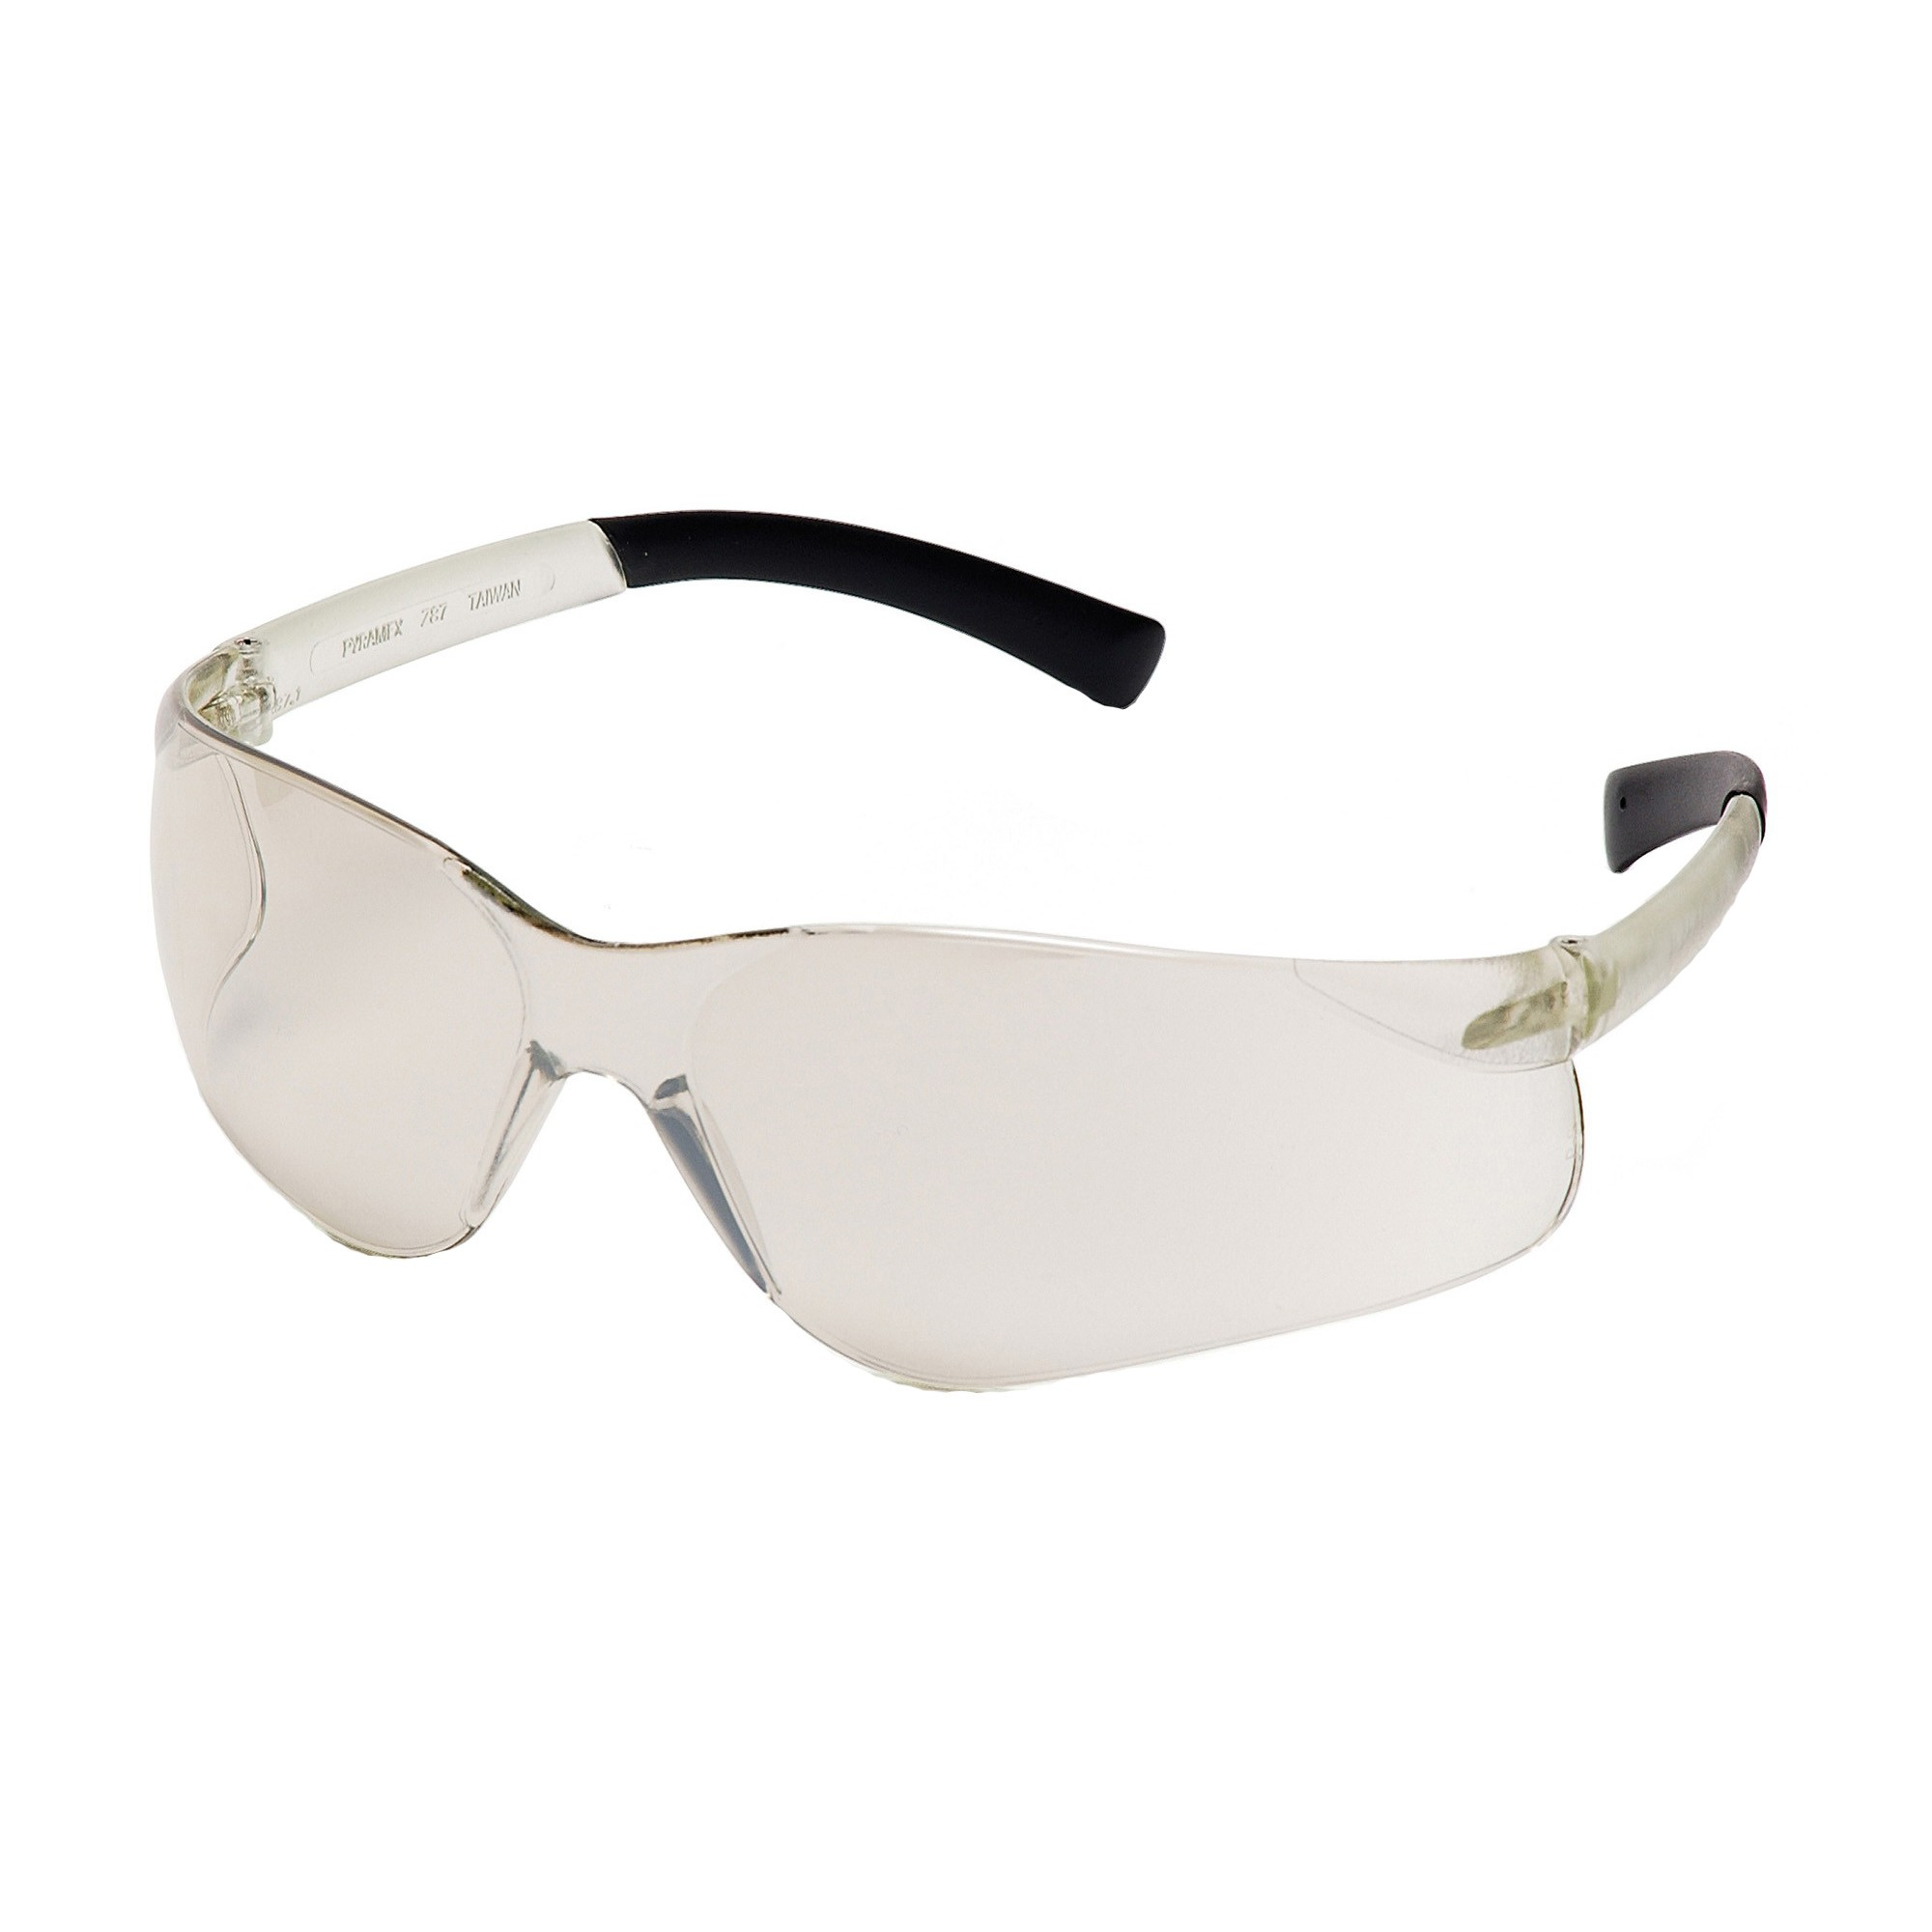 Pyramex® S2580S Light Weight Protective Glasses, Universal, Wraparound Matte Frame, Scratch-Resistant